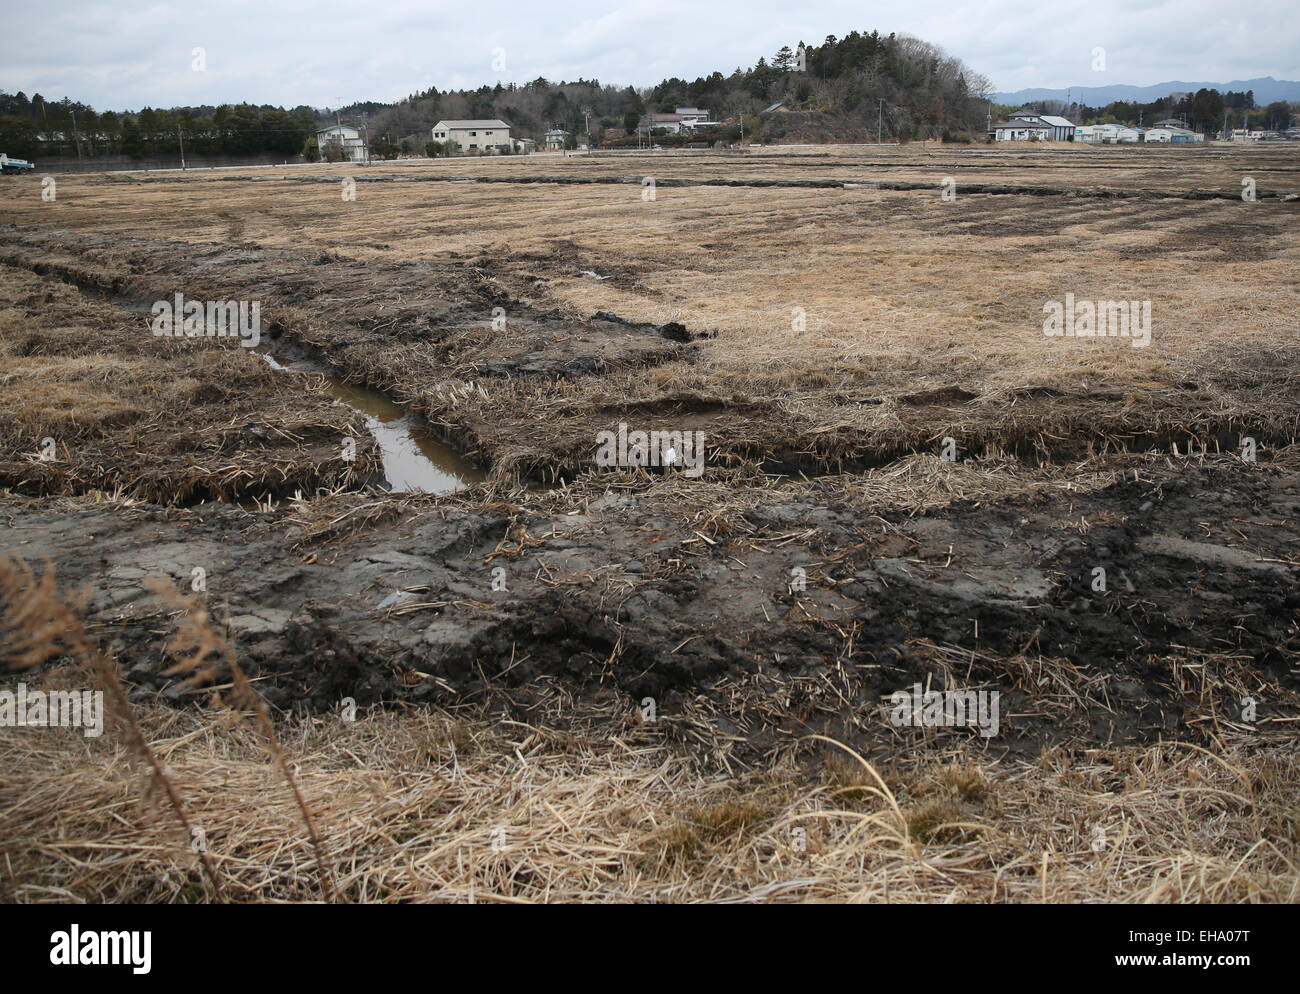 (150310) -- FUKUSHIMA, March 10, 2015 (Xinhua) -- Damaged fields and houses are seen in the Futaba District, located - Stock Image